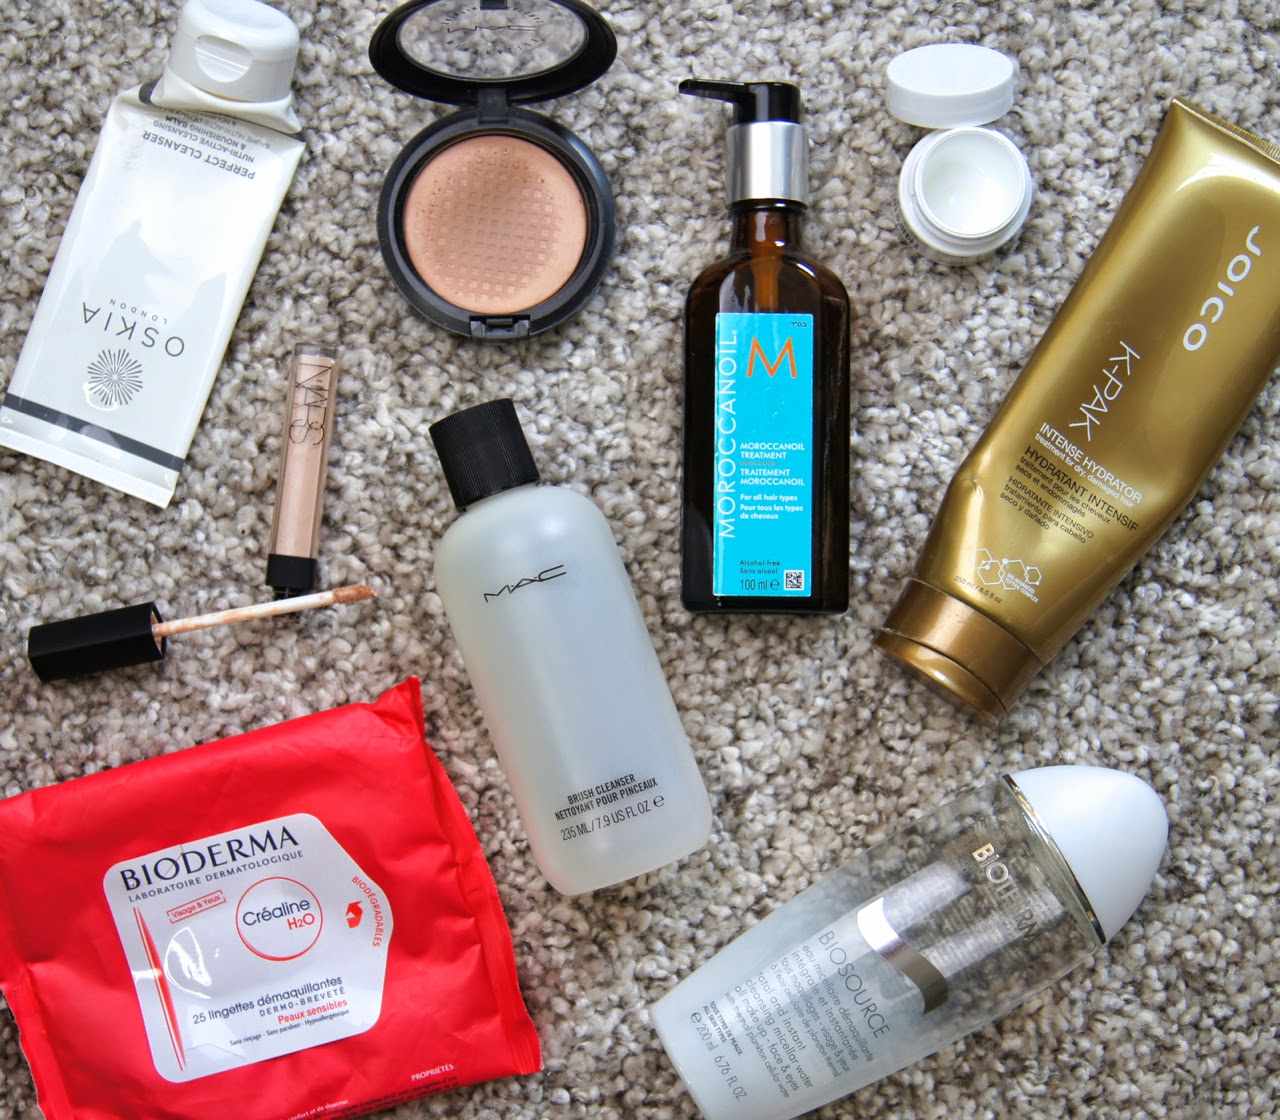 used up empty finished beauty products OSKIA cleanser nars concealer mac brush cleanser moroccan oil hair treatment Kiehl's eye cream bioderma wipes